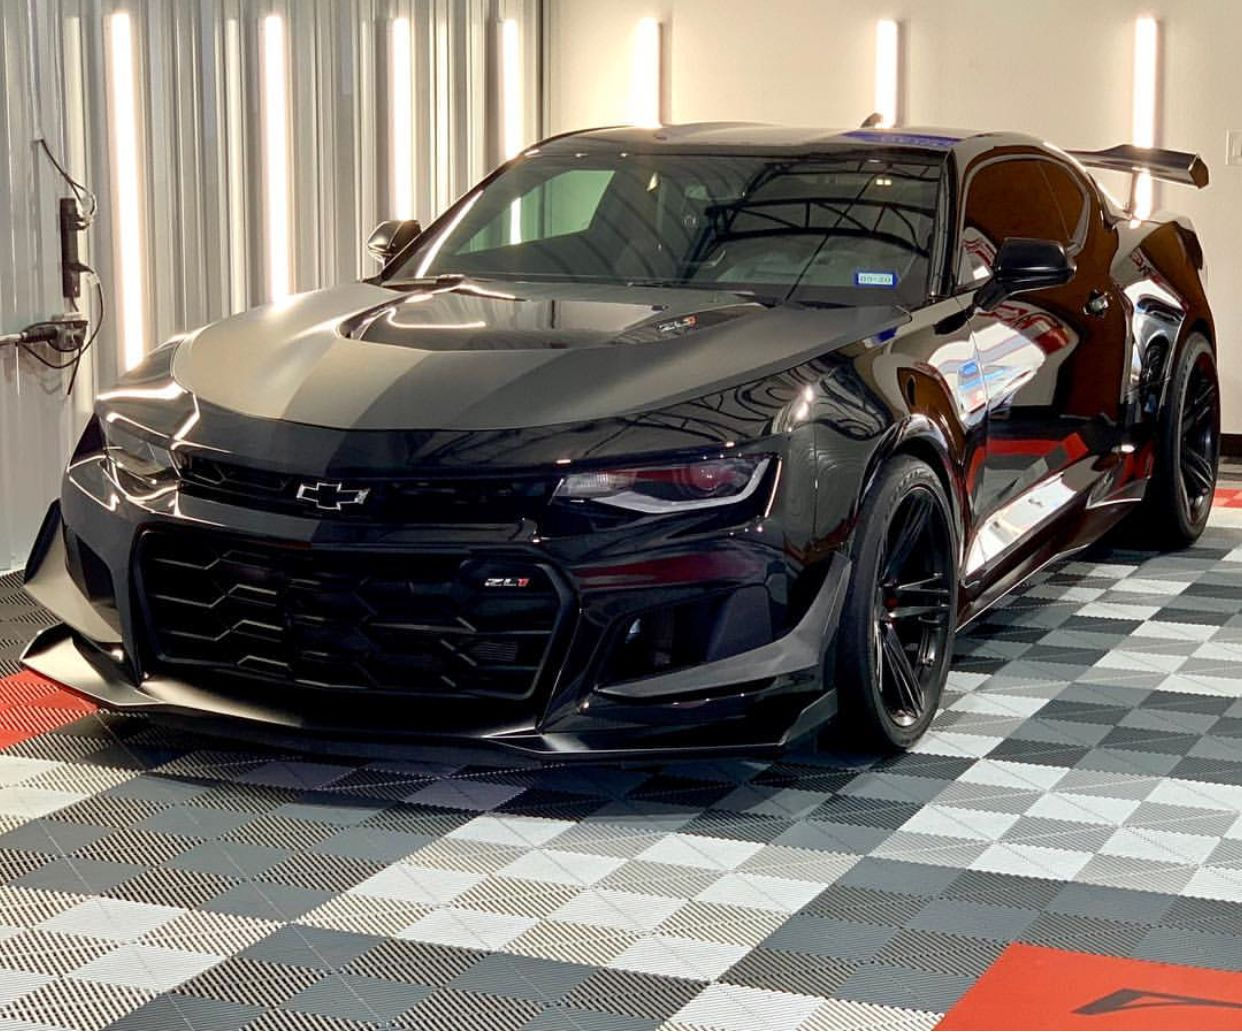 Chevrolet Camaro Zl1 1le Painted In Black Photo Taken By